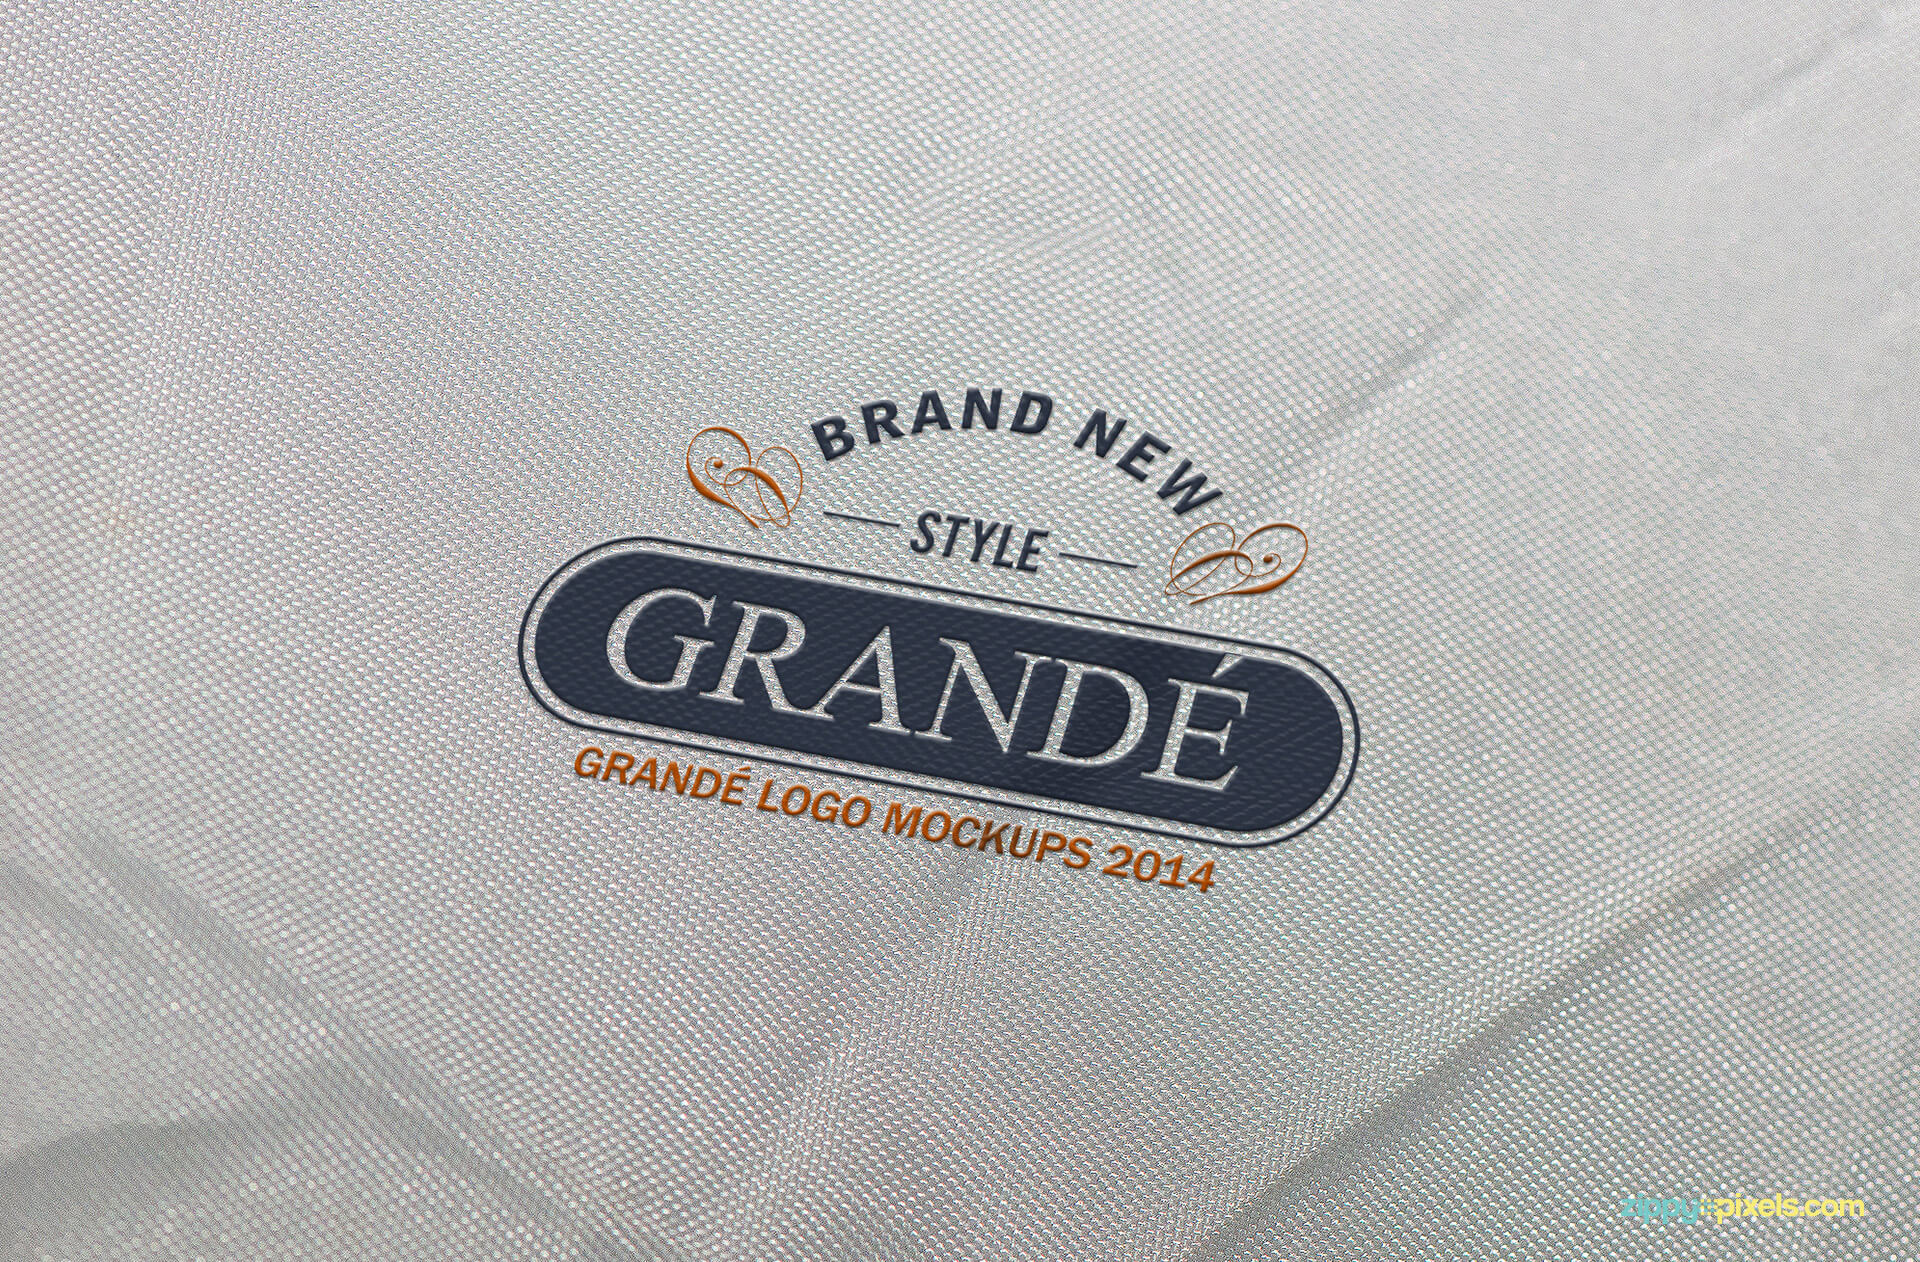 Logo Mockup of Rubber Print on Wrinkled Fabric